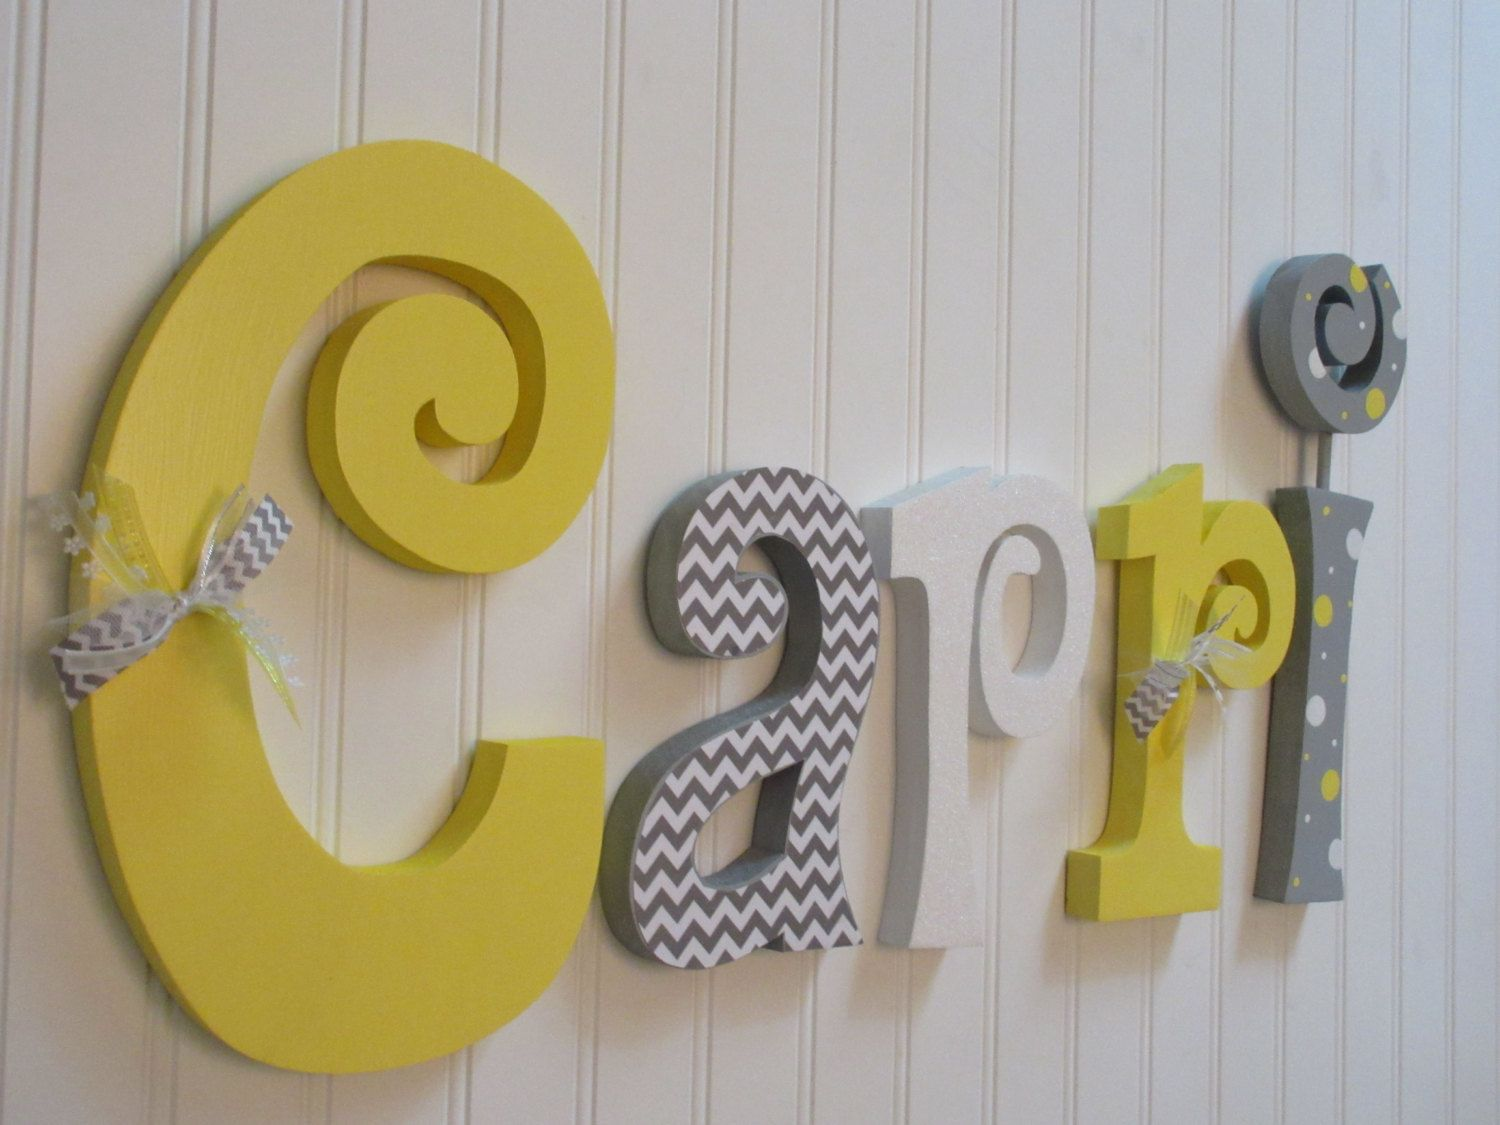 Charming Letters For Wall Decor For Nursery Images - The Wall Art ...